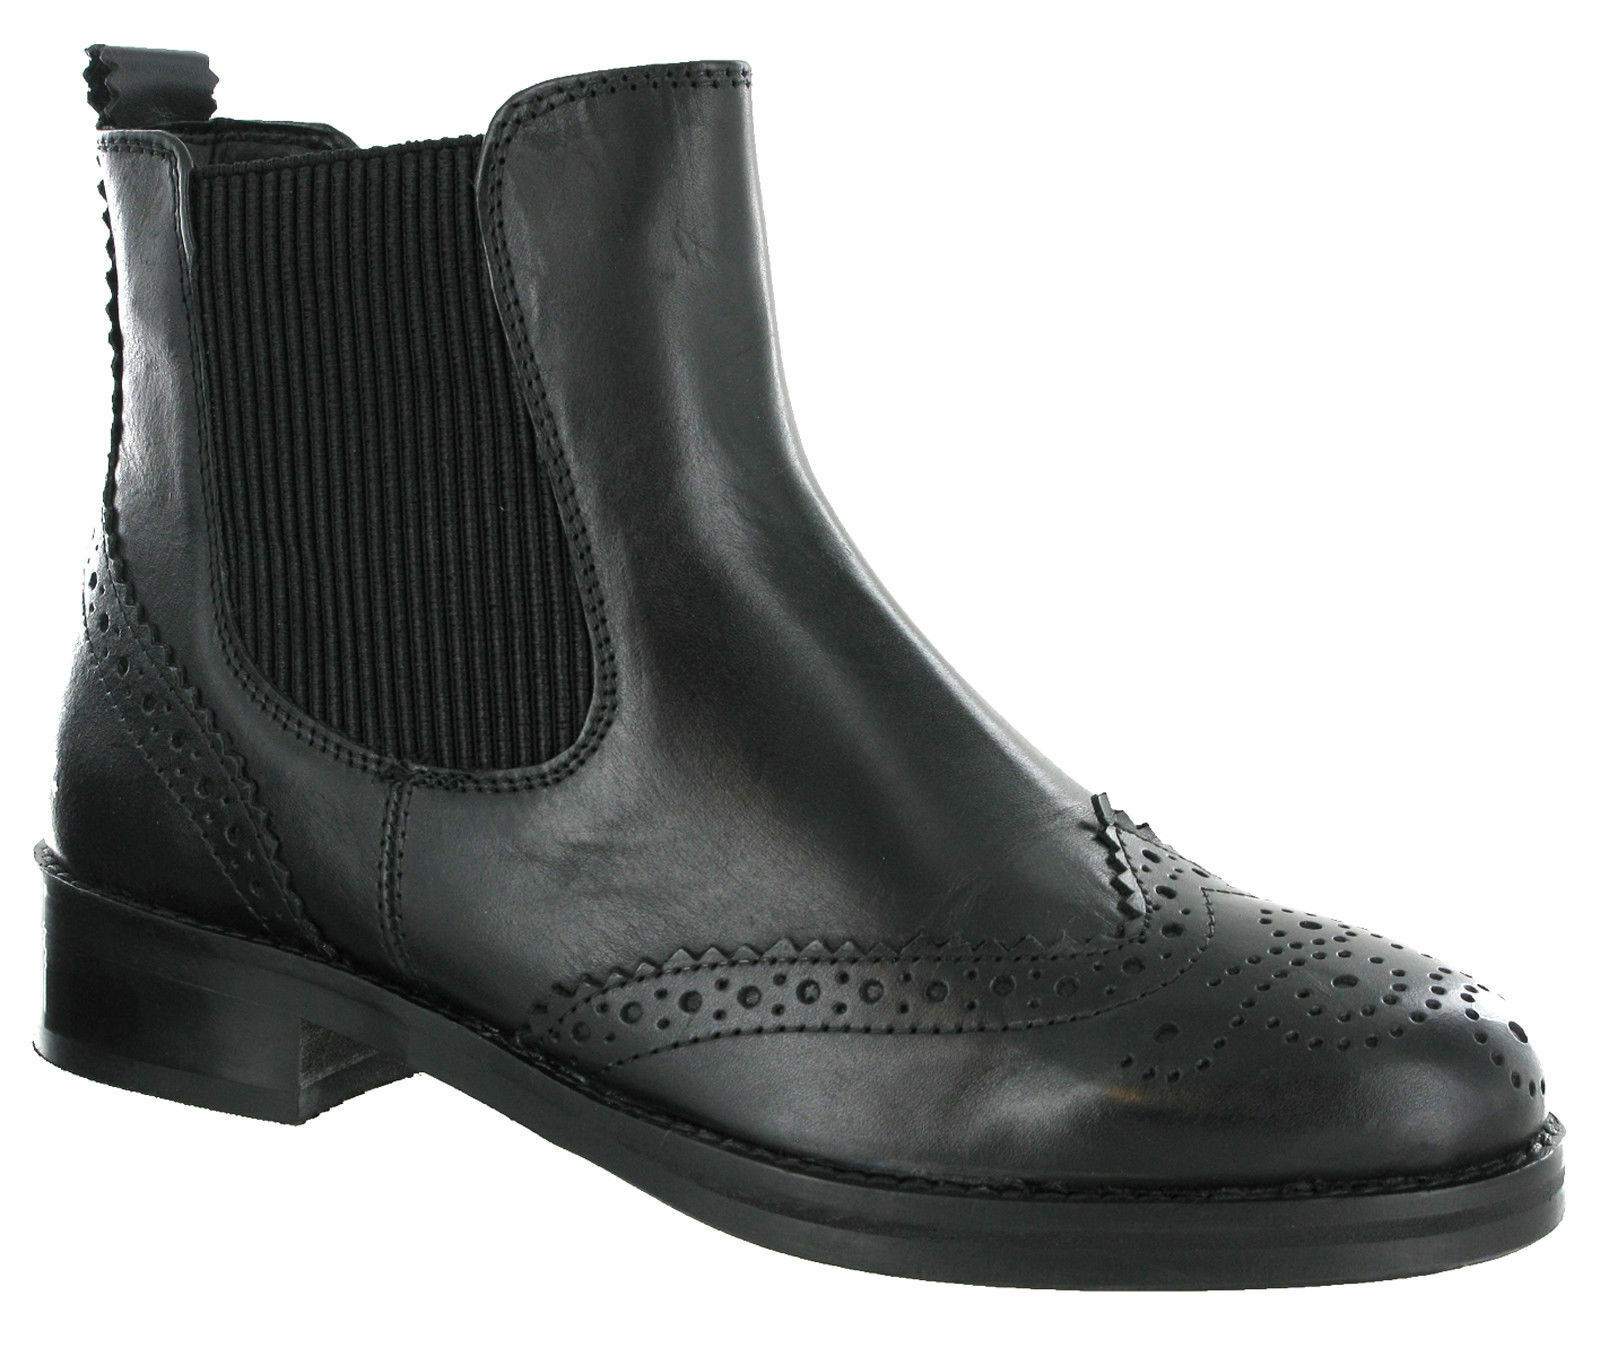 Cipriata Boots Twin Gusset Brogue Leather Boots Cipriata Ankle Horse Riding Equestrian Womens 0d9dca